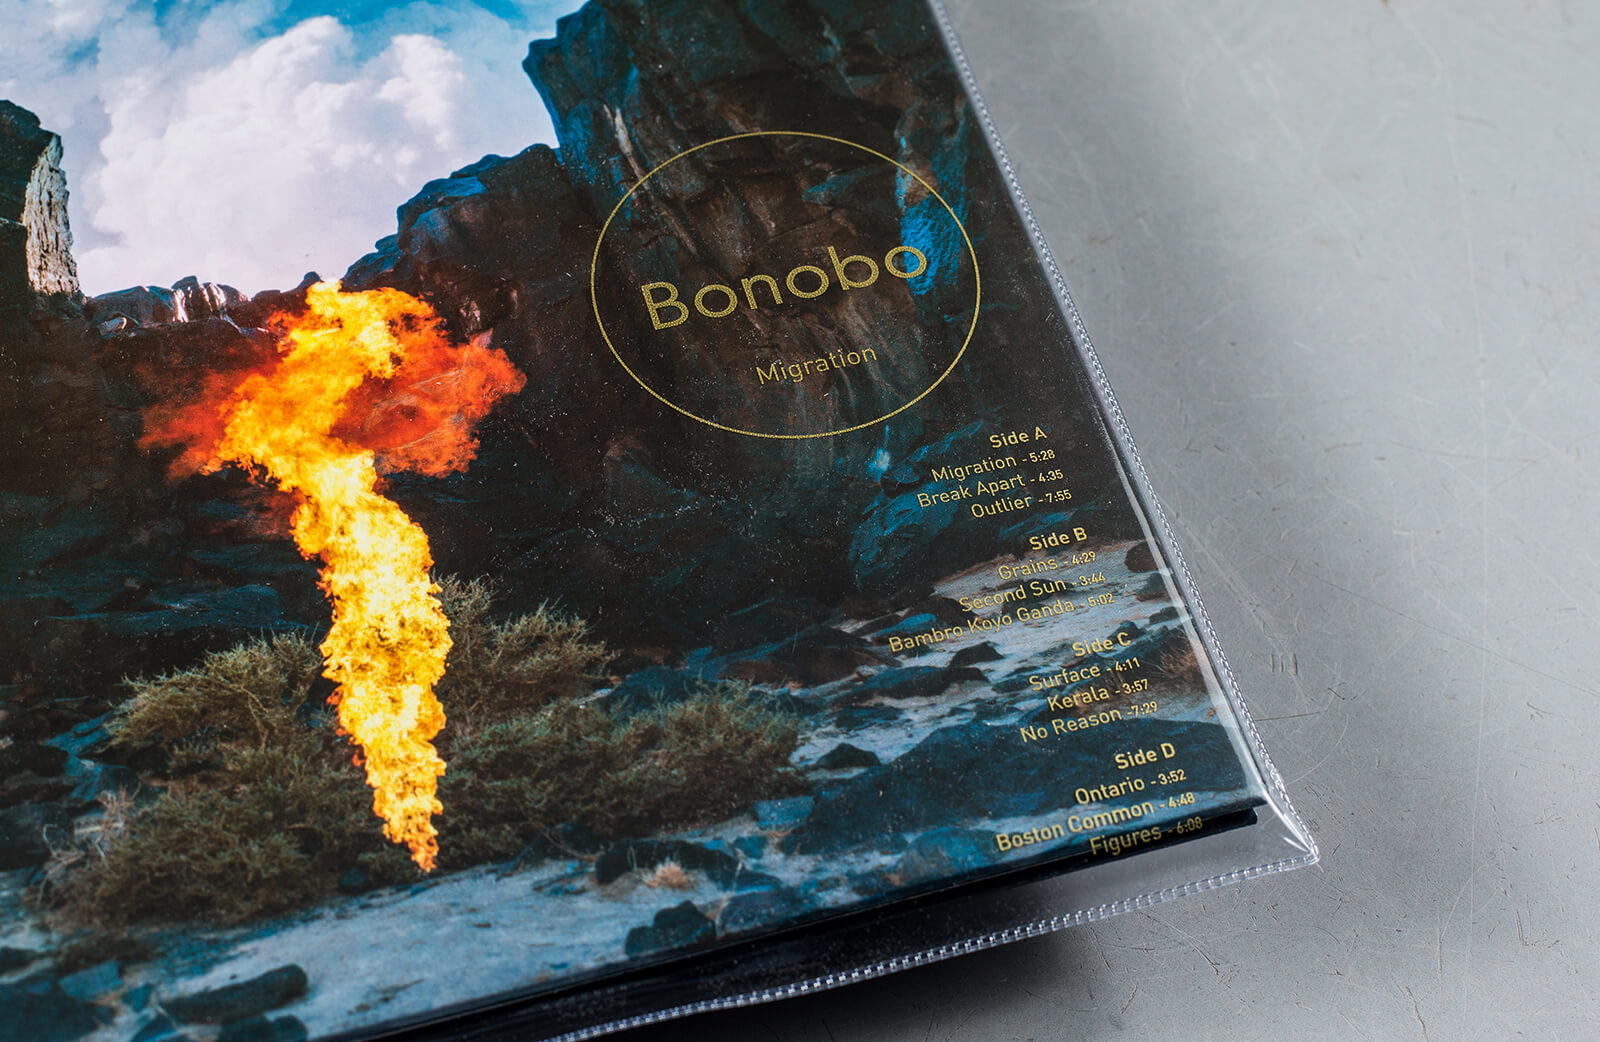 bonobo migration torrent